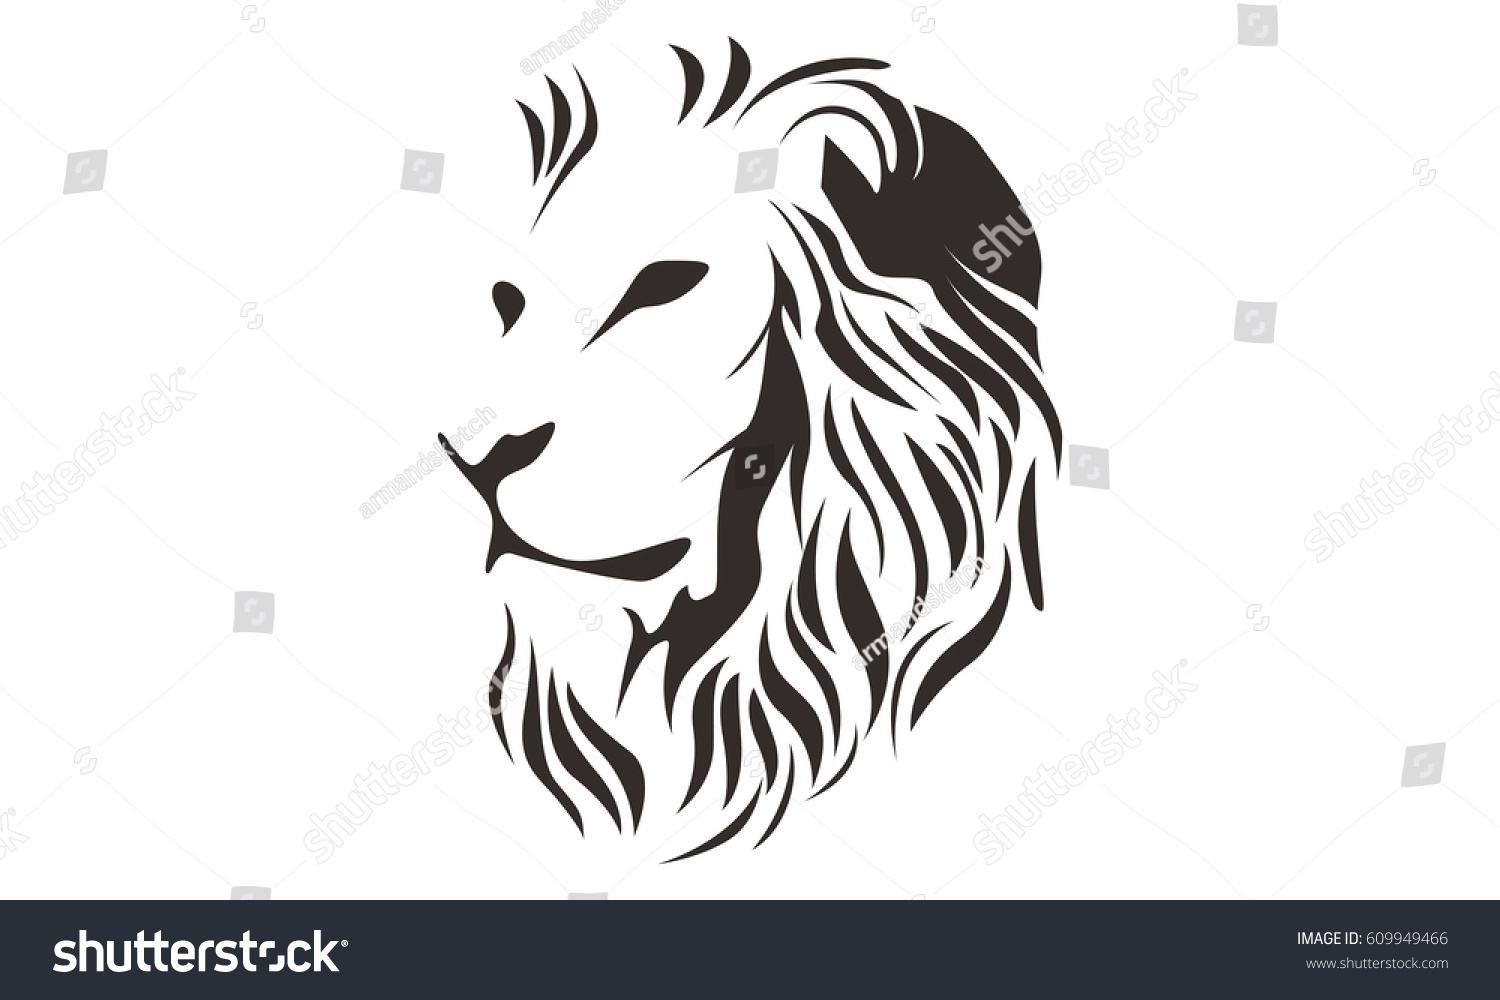 Line Drawing Lion Head : Lion head line art drawing illustration stock vector